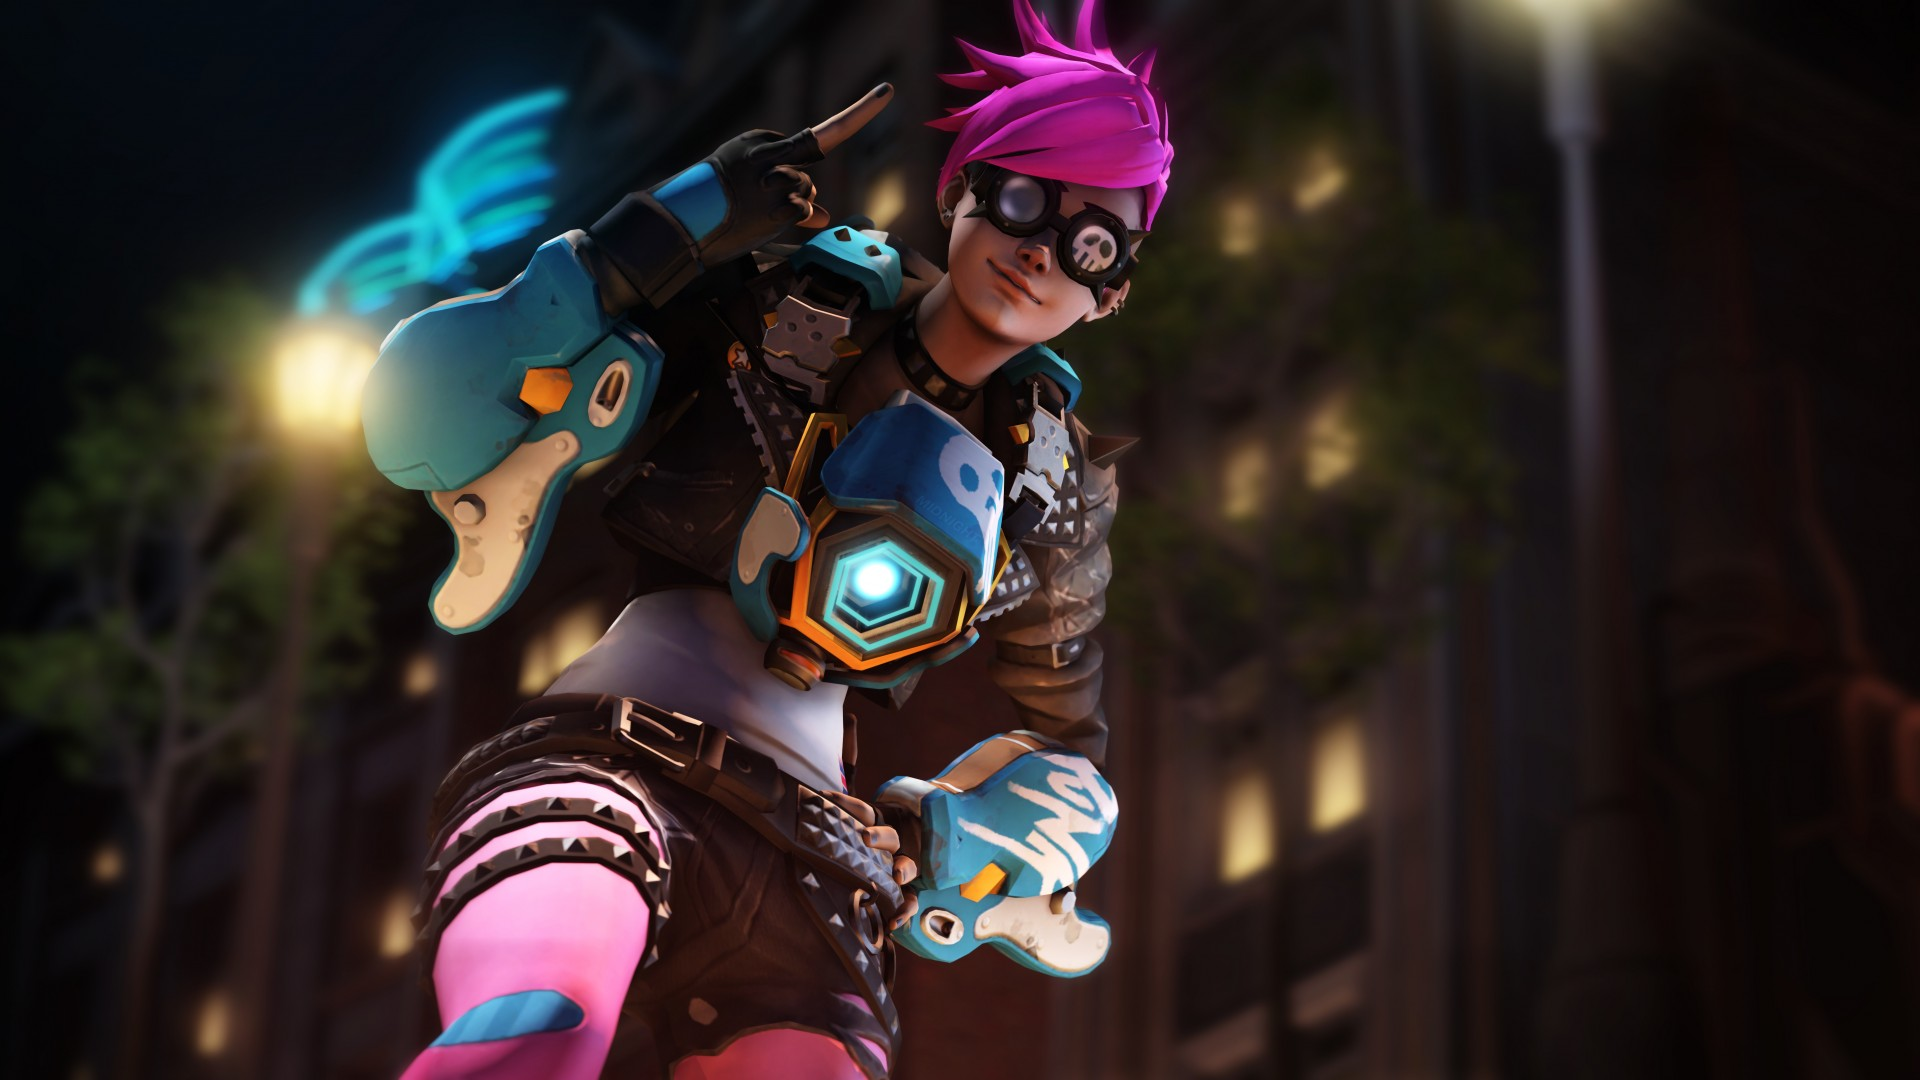 Pink Anime Girl Wallpaper Punk Tracer Overwatch 5k Wallpapers Hd Wallpapers Id